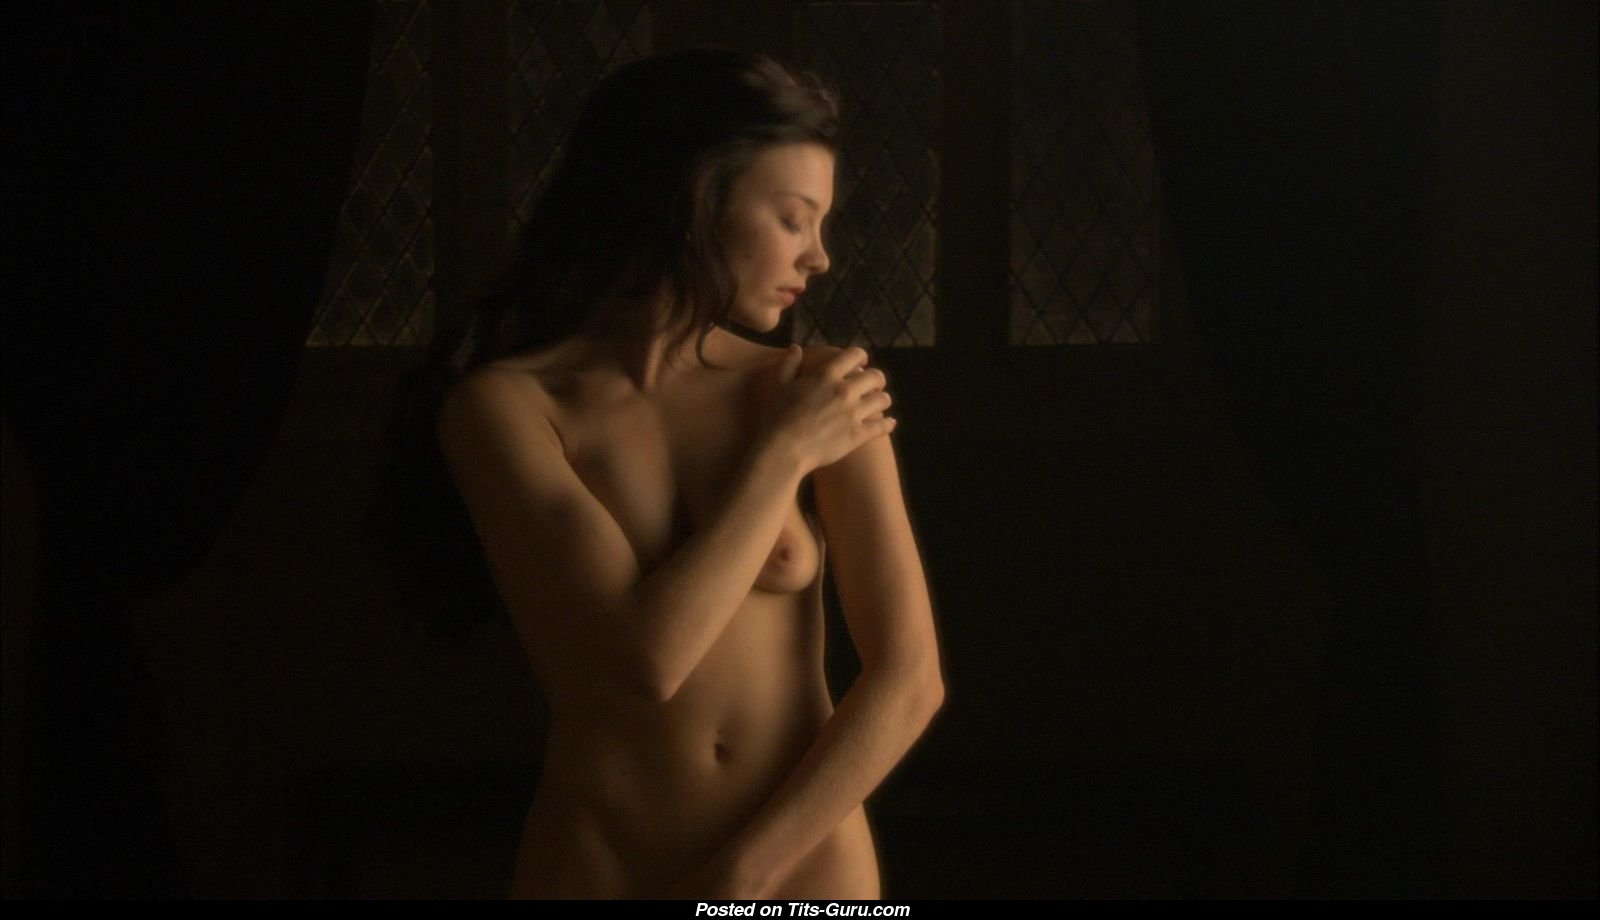 Natalie dormer nude boobs and tattooed body from in darkness movie new picture